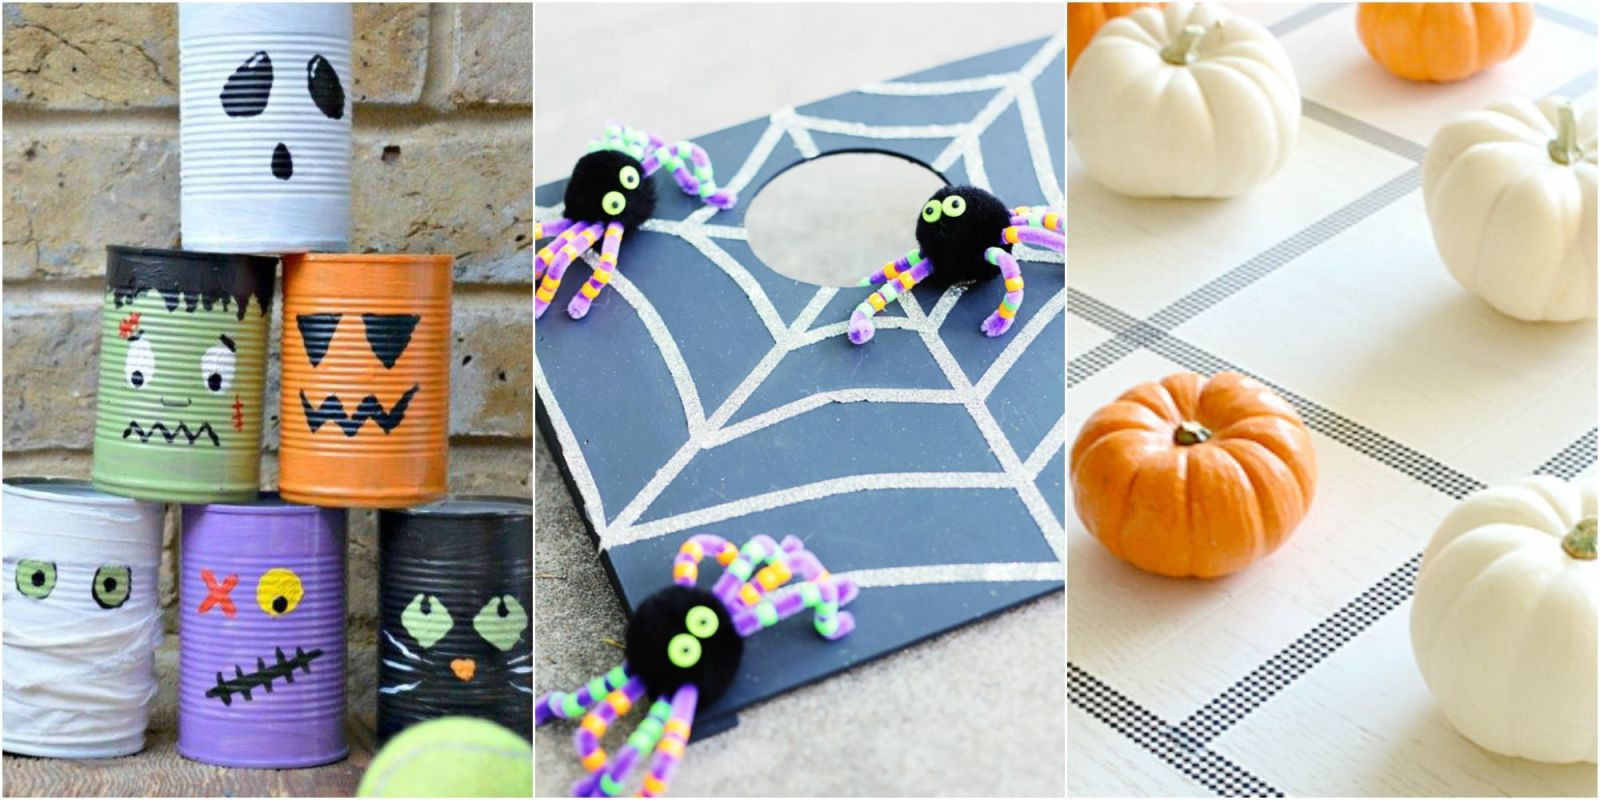 Diy Halloween Party Ideas  25 Halloween Games For Your 2016 Halloween Party DIY